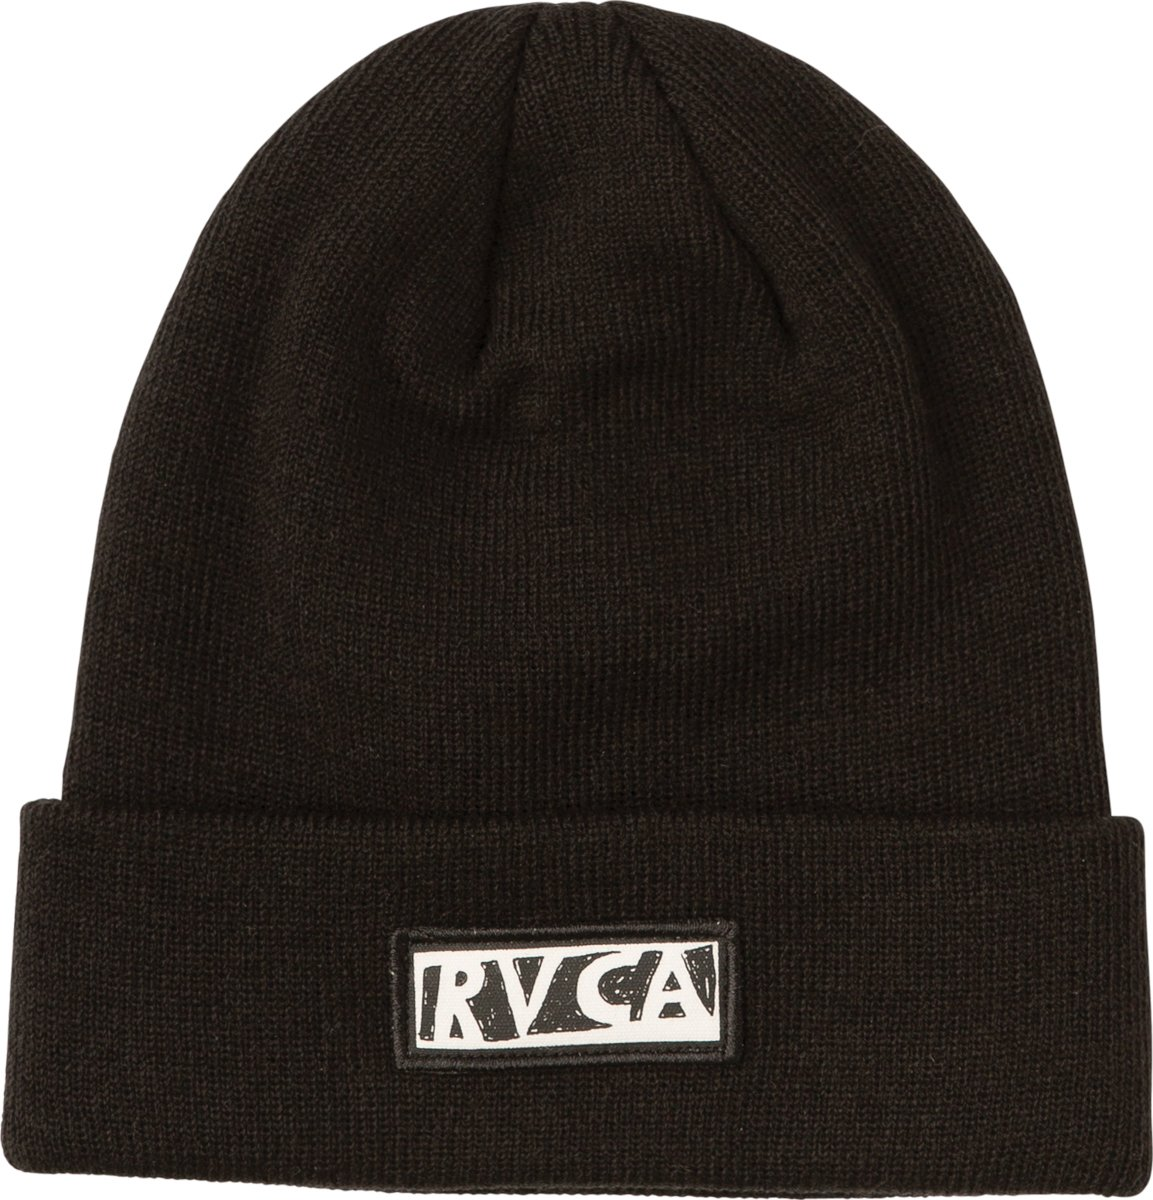 RVCA Women s Grillo Beam up Beanie Black One Size  Amazon.ca  Sports    Outdoors 0735f440b4